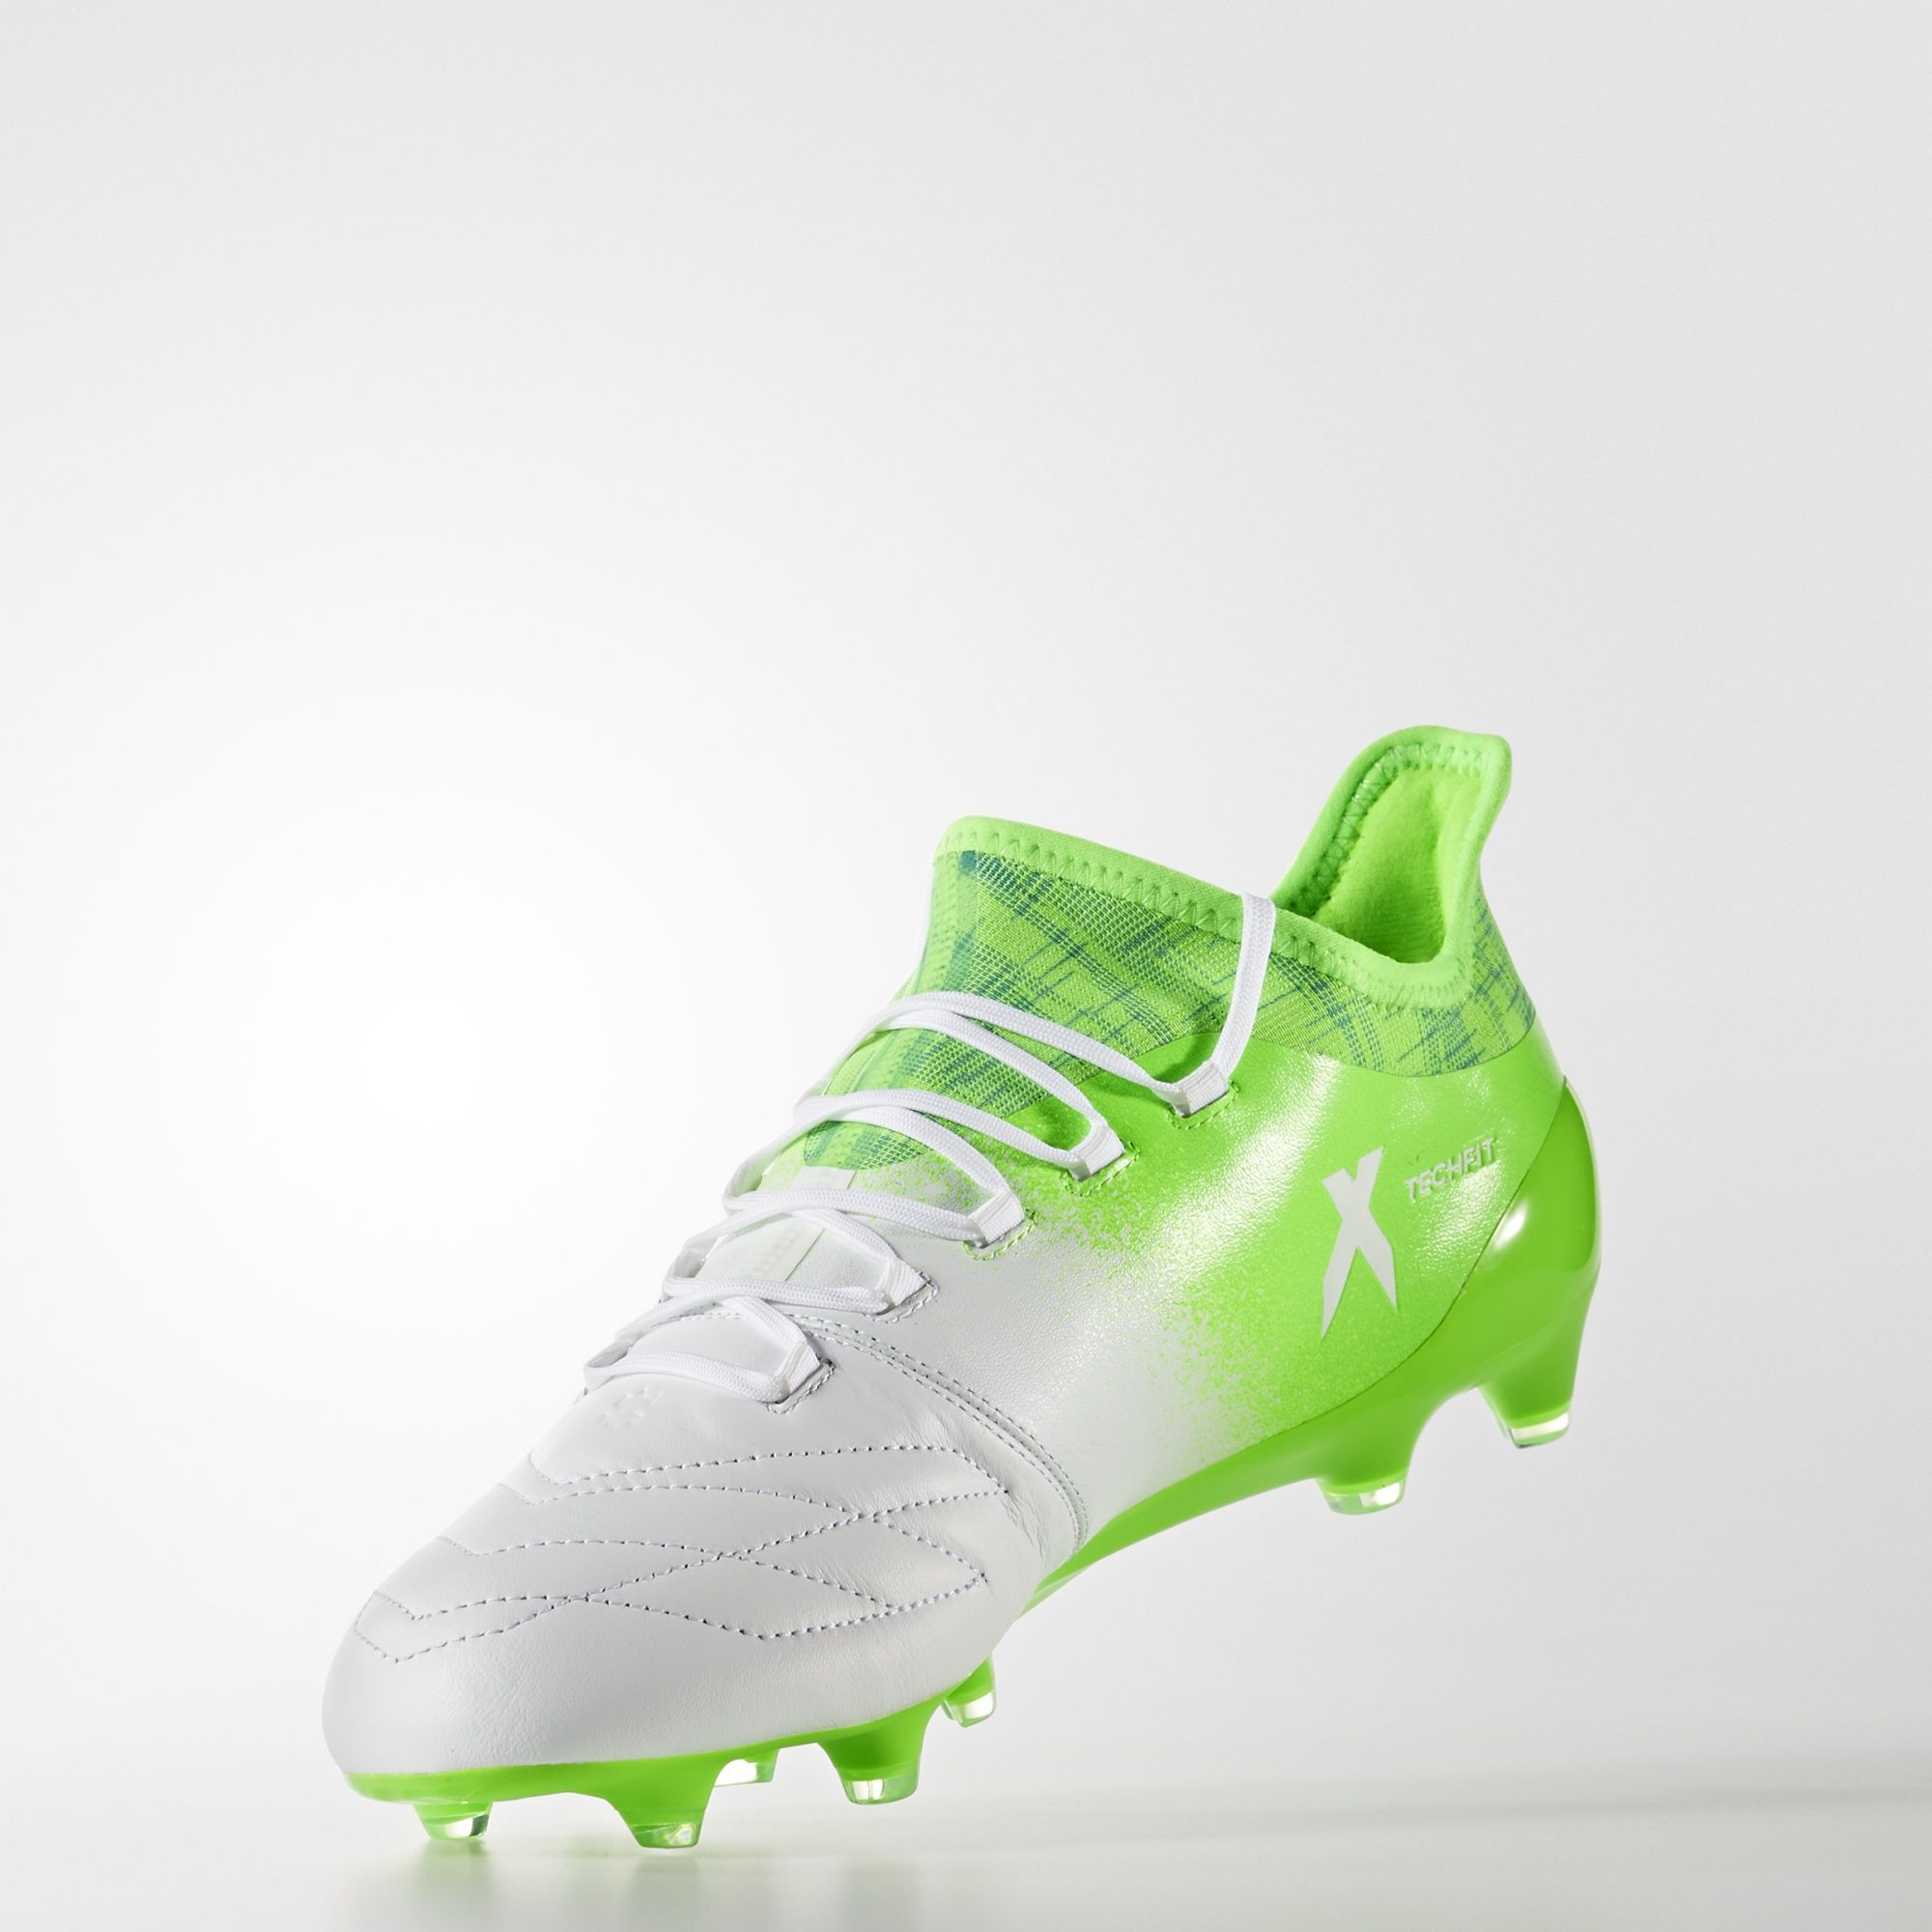 Adidas X 16.1 Leather Turbocharge Firm Ground Boots